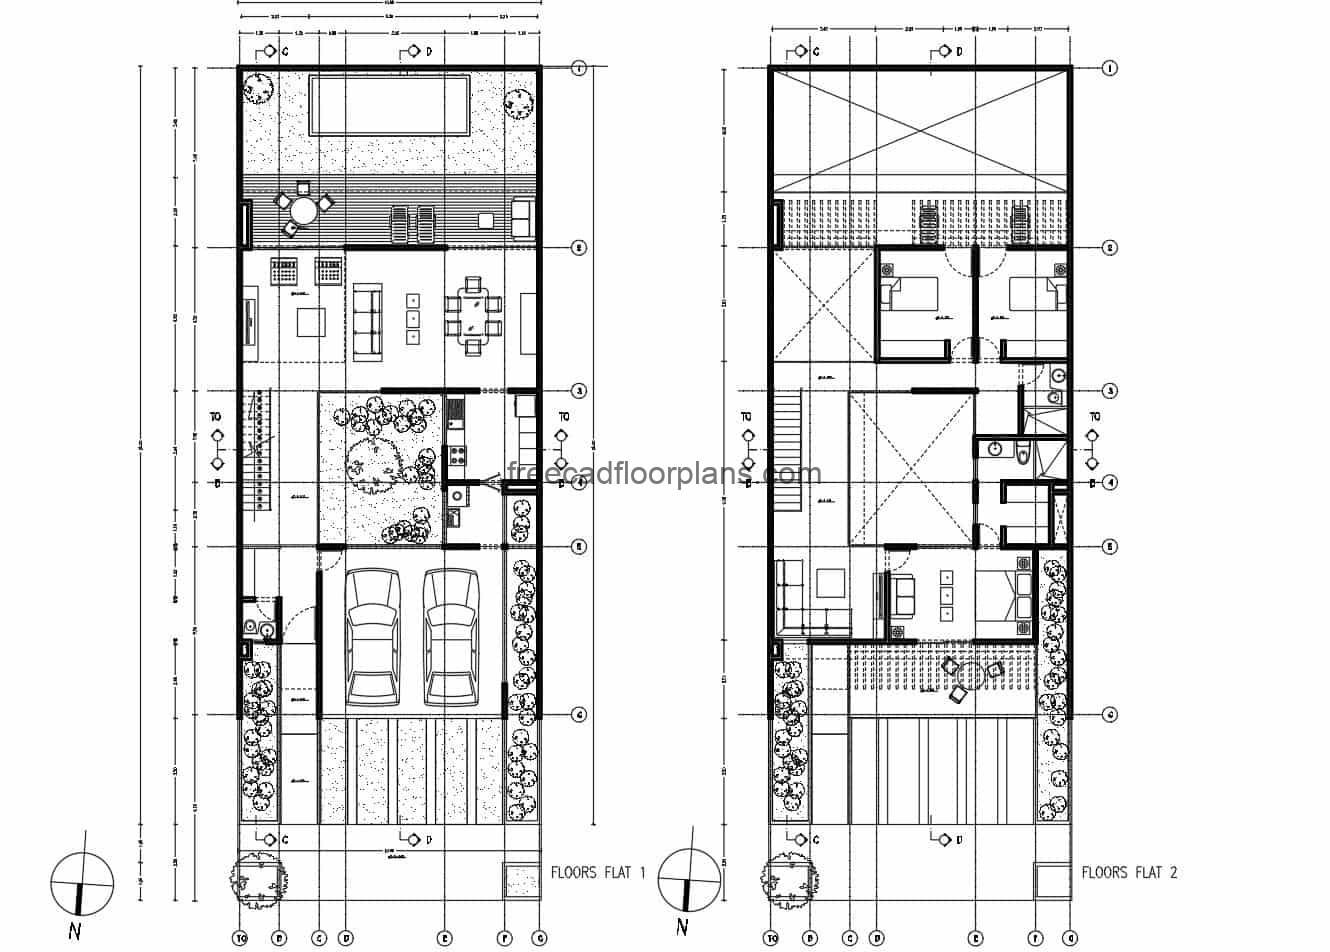 Architectural design in DWG format of rectangular house of two levels with three rooms in the second level, garage for two vehicles in the first level, living room, kitchen, and back with dining room, family room, terrace and pool, the house also has an interior patio that divides the spaces.